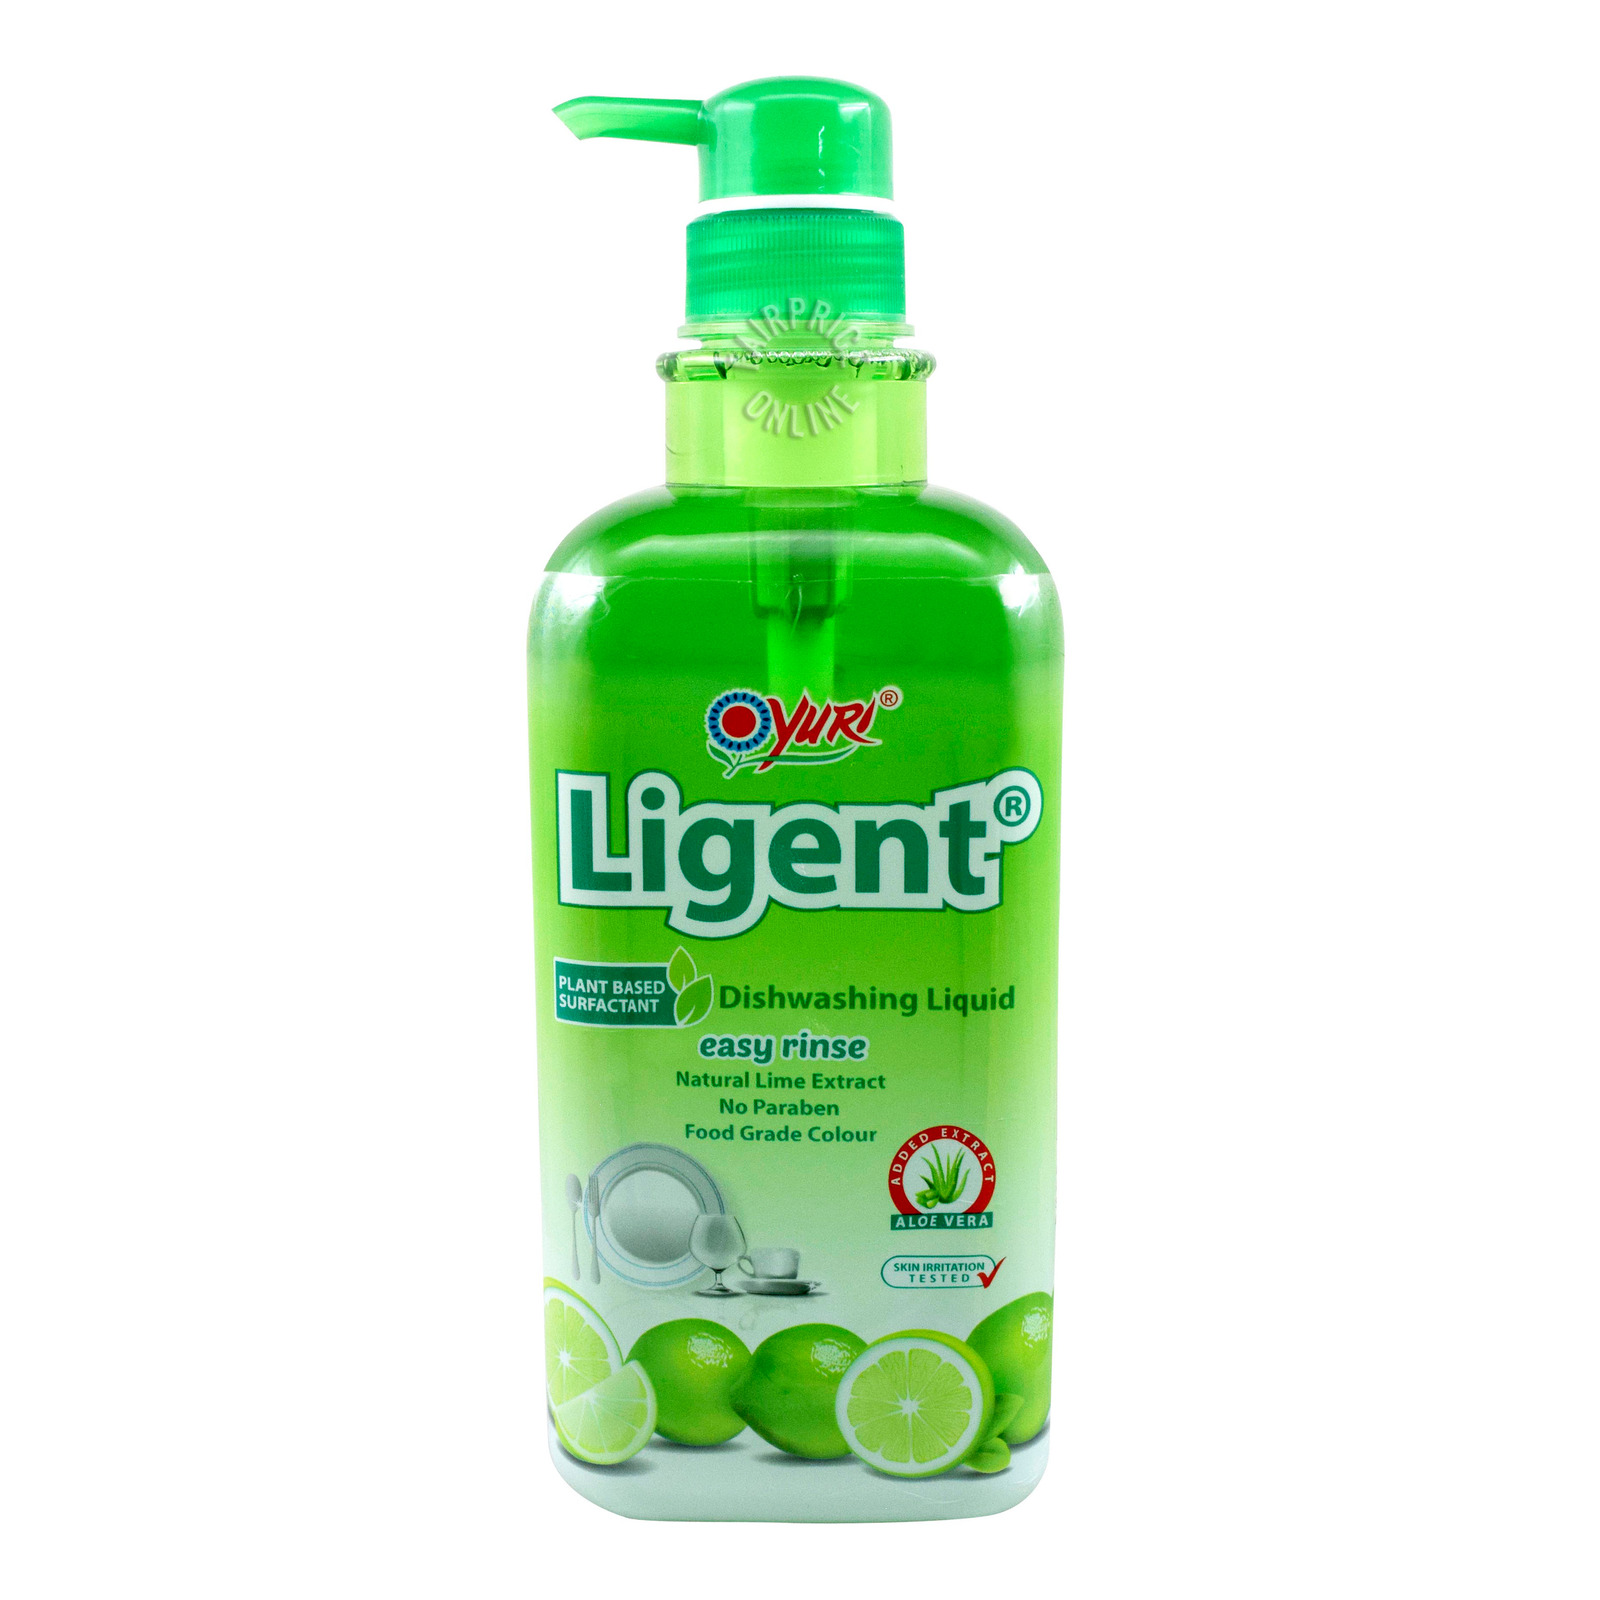 Yuri Ligent Dishwashing Detergent Pump - Lime